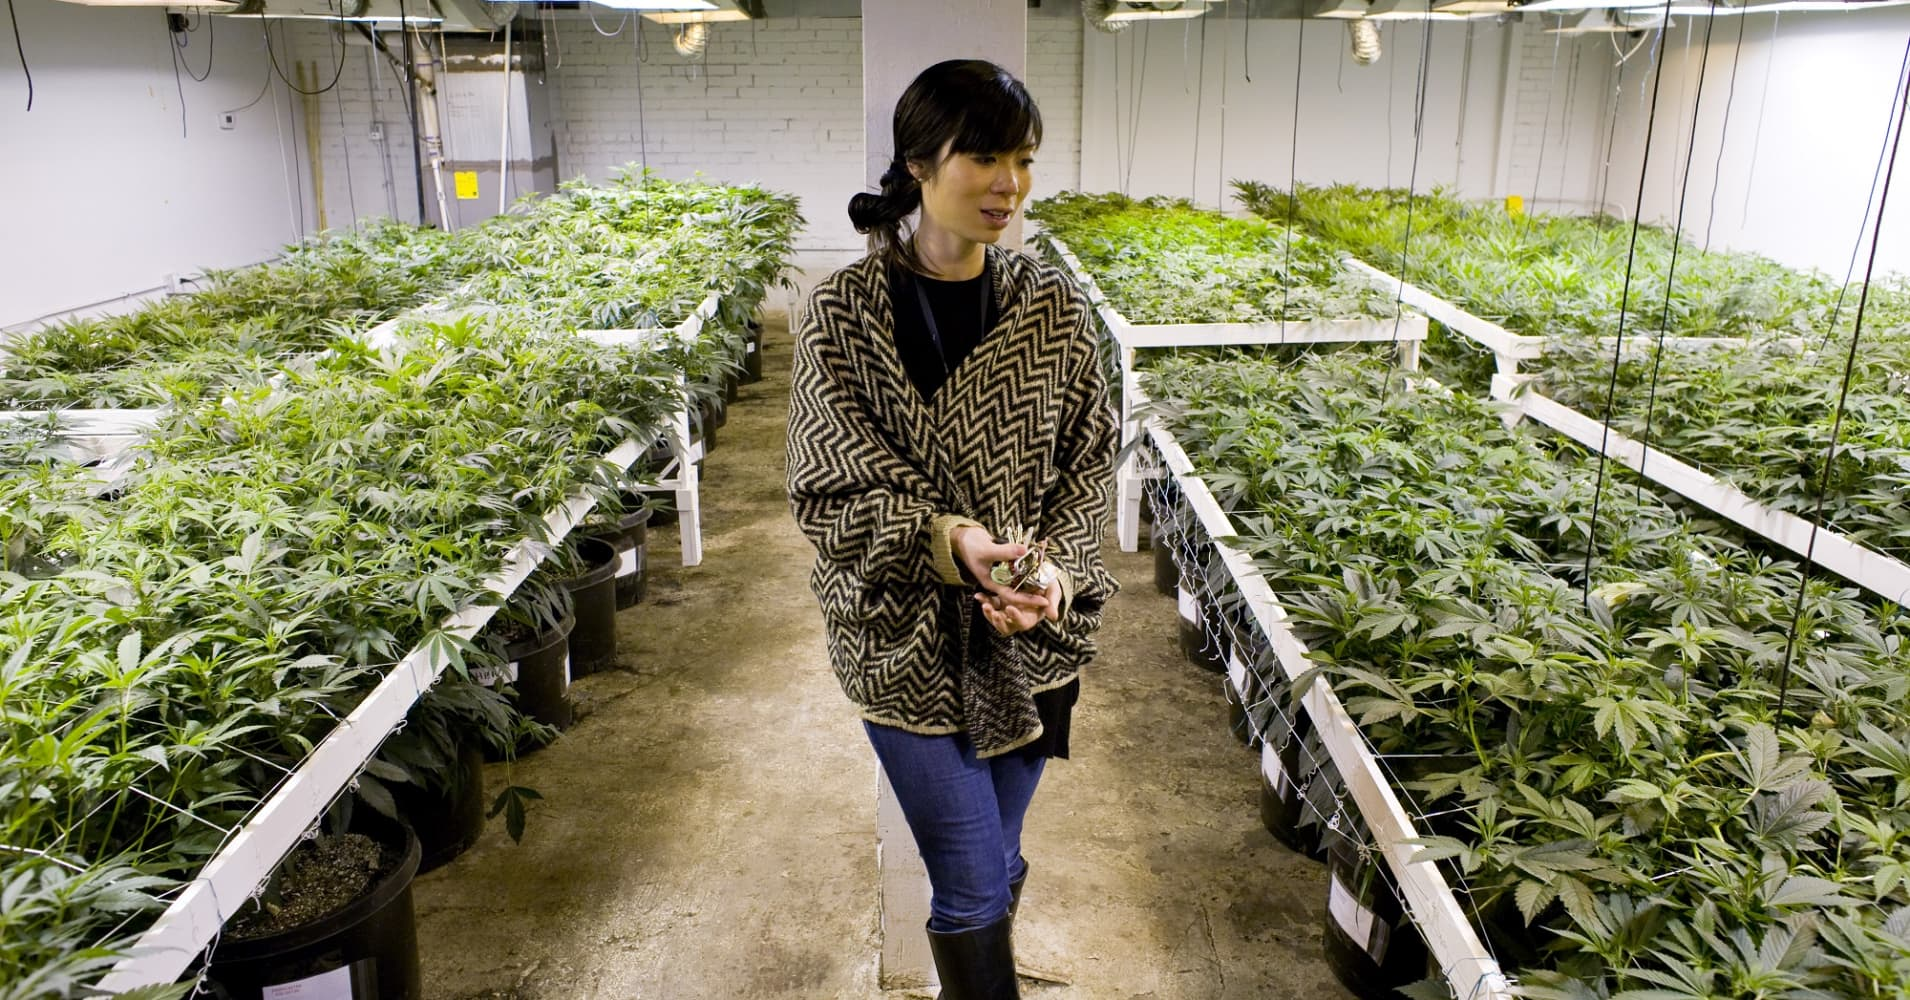 A medical marijuana operation In Colorado run by Kristi Kelly, co-founder of Good Meds Network.